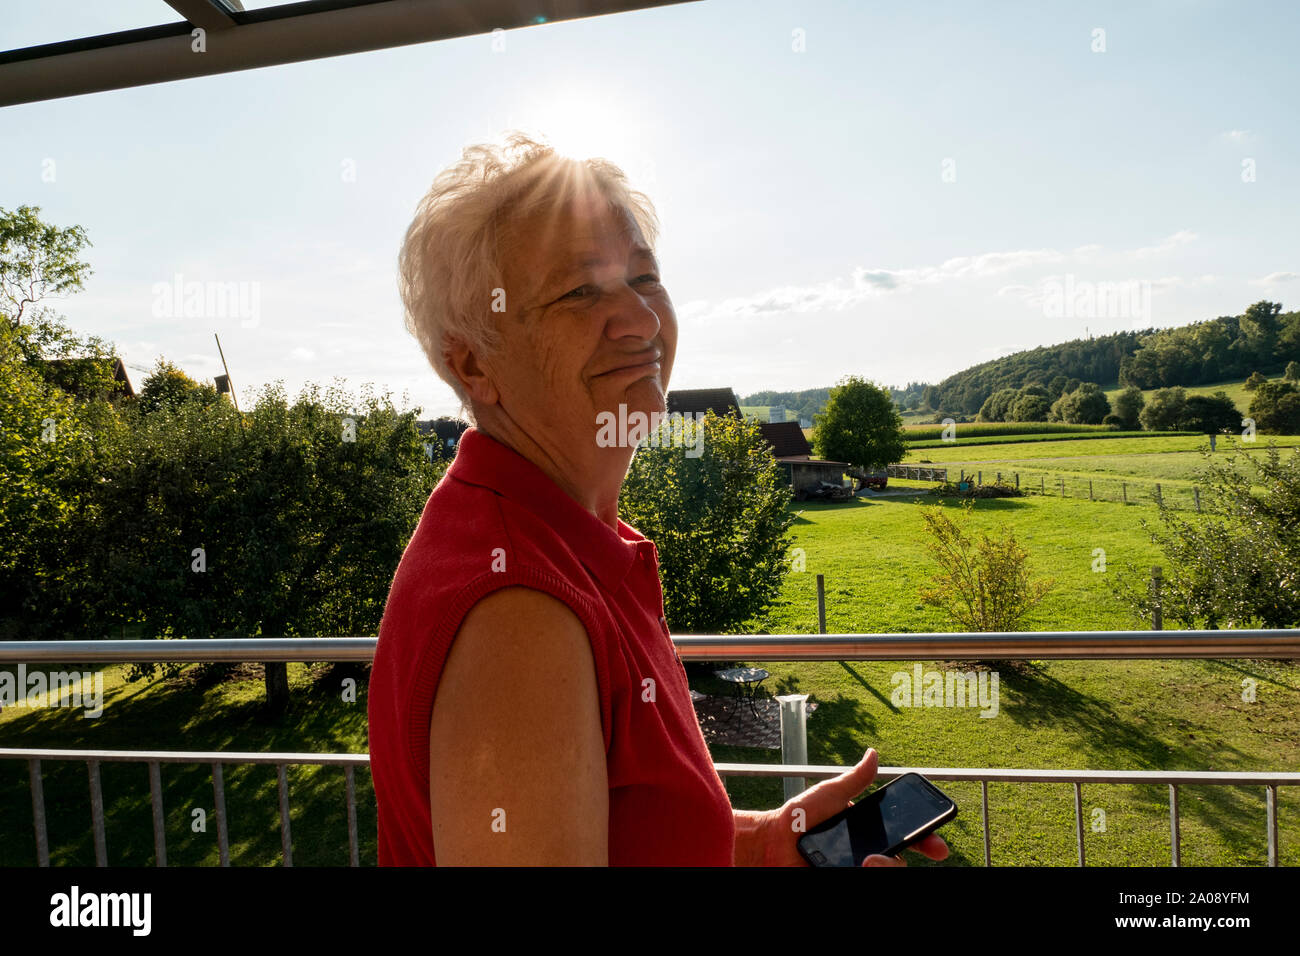 Senior woman with white hair is standing on the balcony looking at her mobile phone. Stock Photo